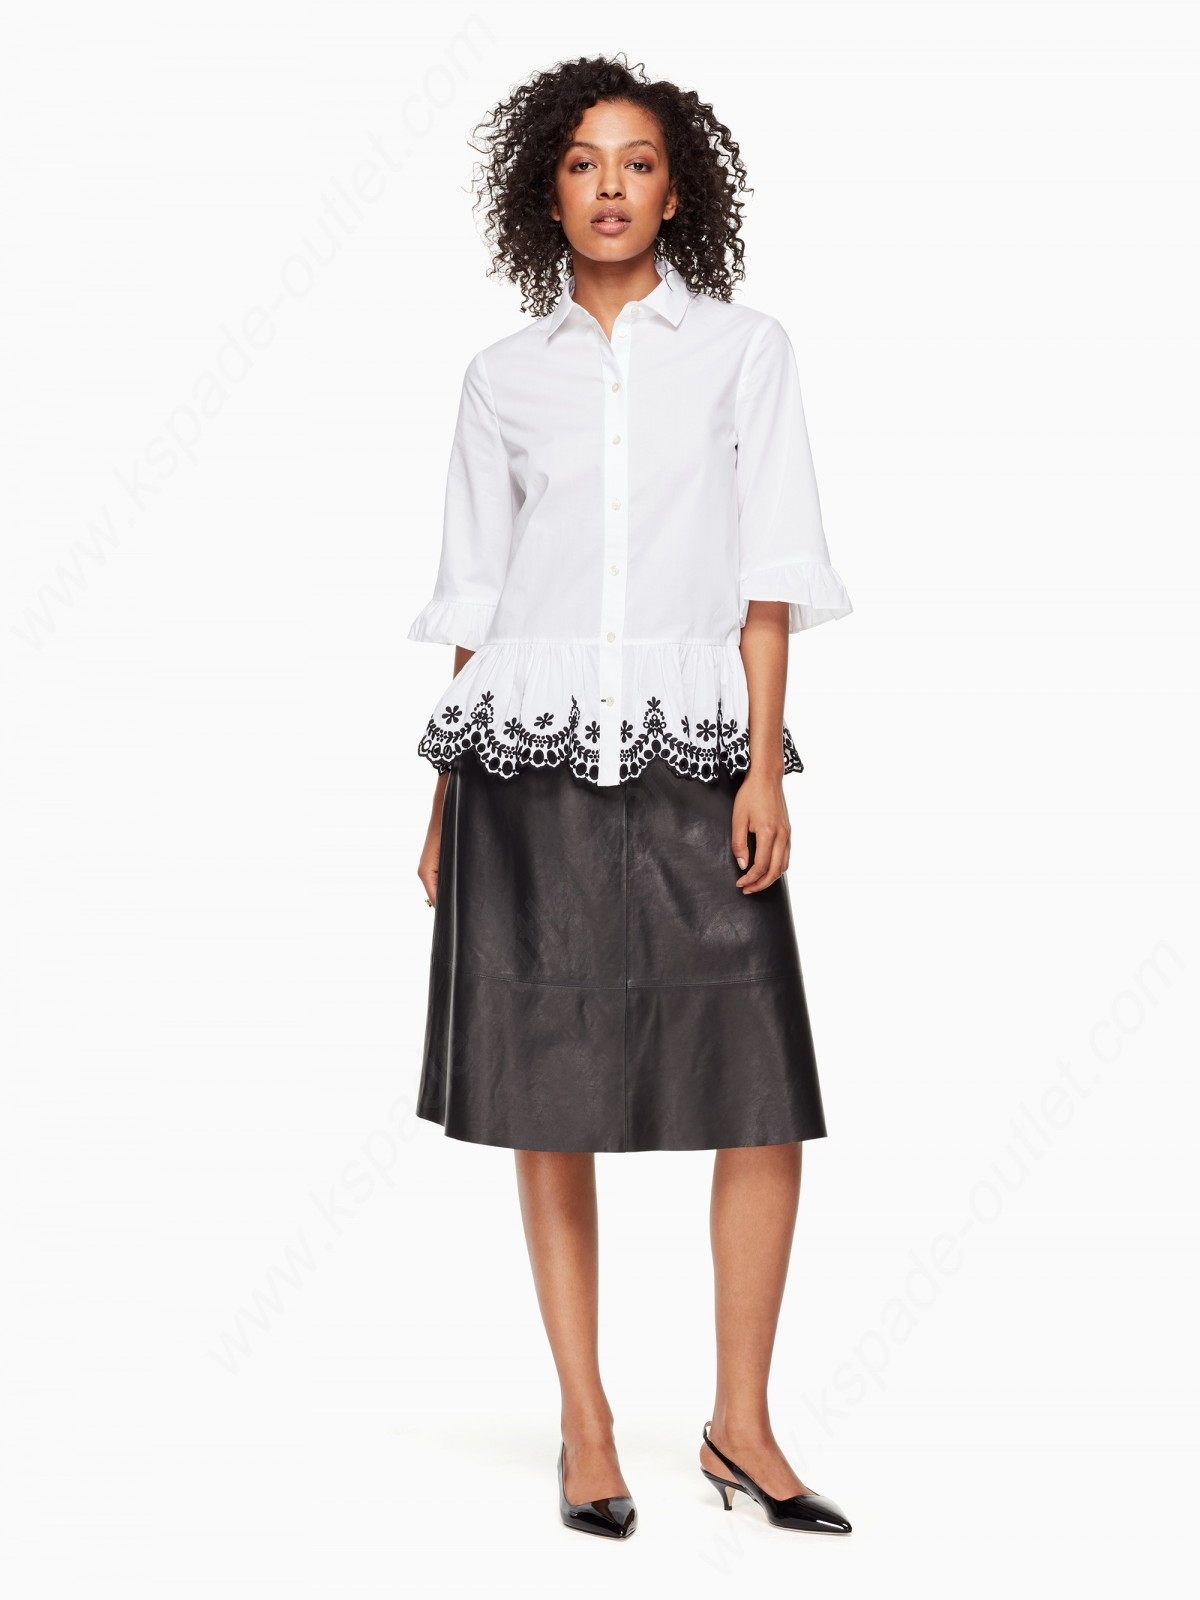 Kate Spade Women Clothing Short Sleeve Cutwork Top - -4